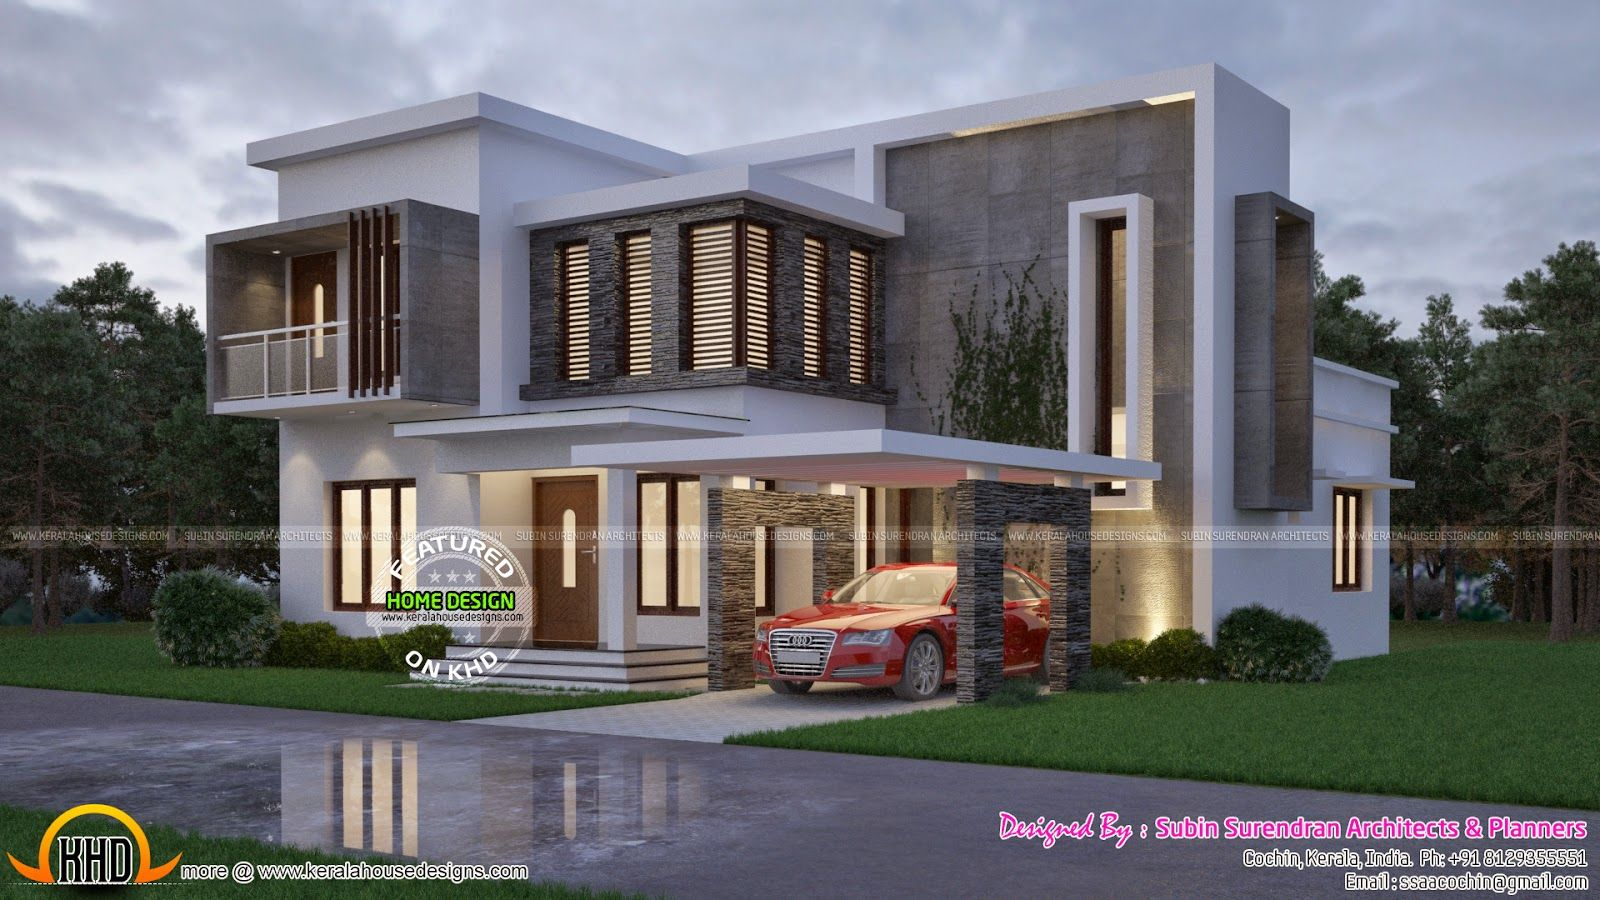 Sculpture Of Design Your Own Home Using Best House Design Software Interior Design Software Cool House Designs Best Home Design Software